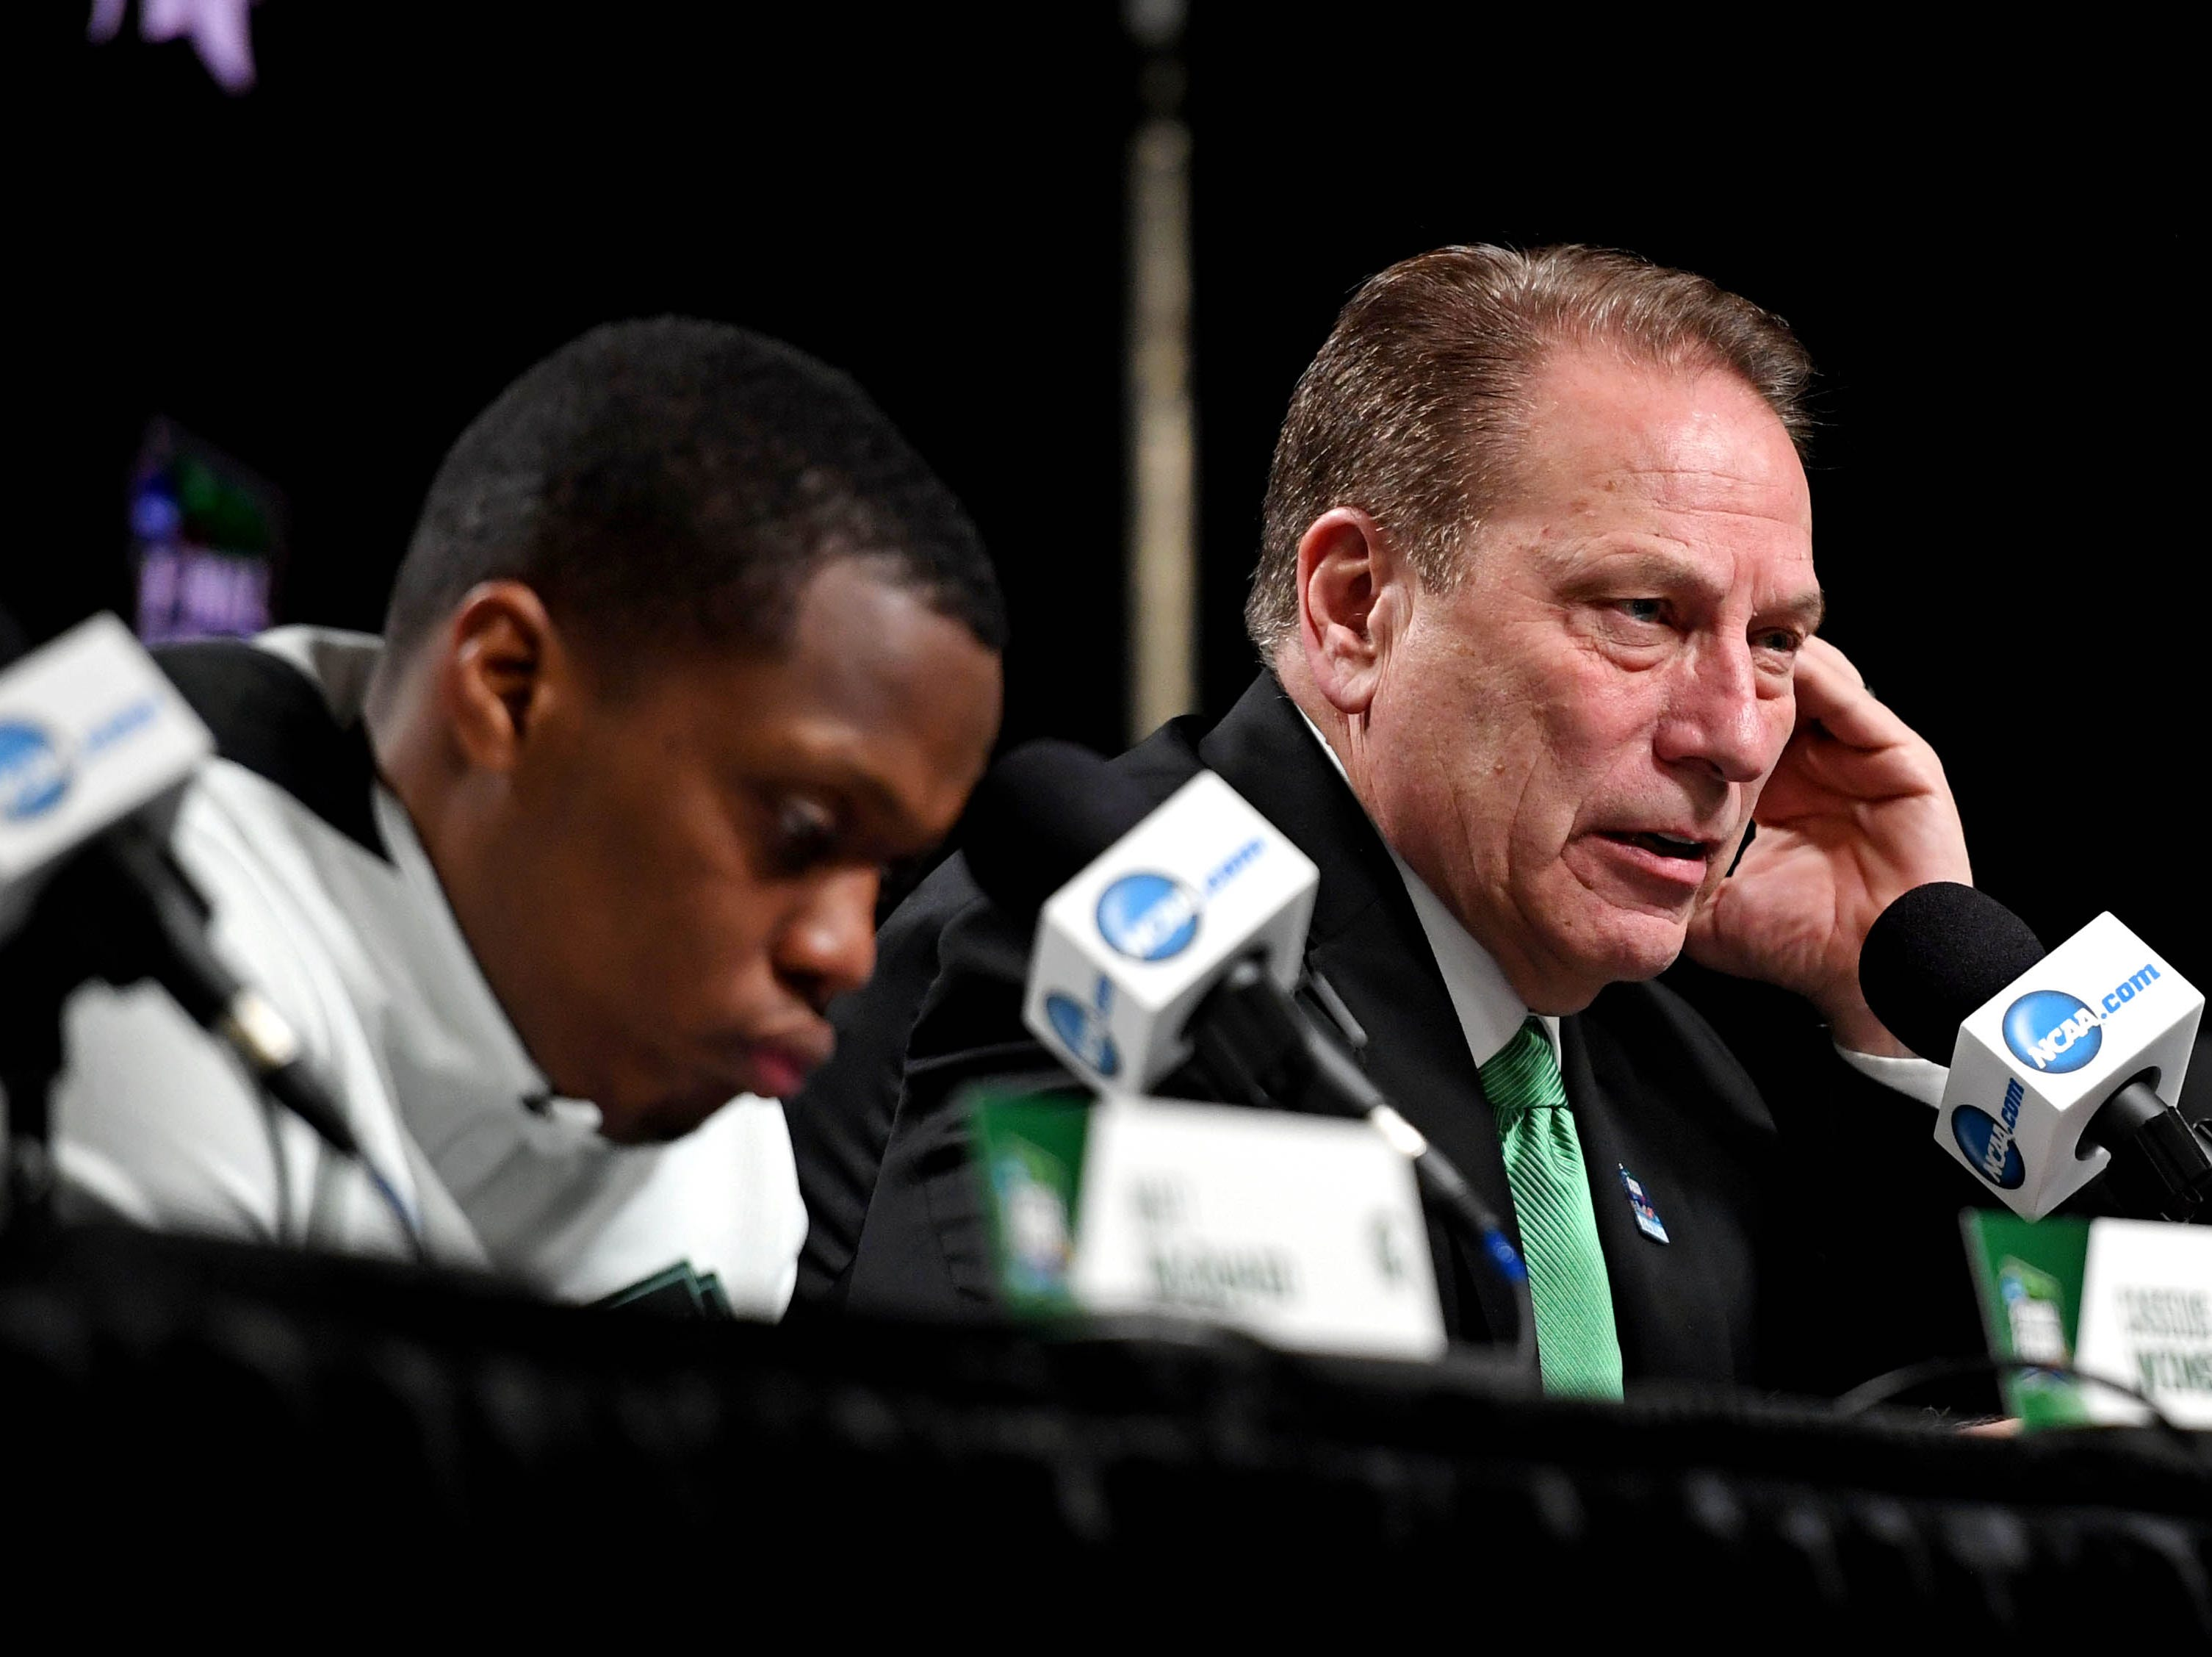 Apr 6, 2019; Minneapolis, MN, USA; Michigan State Spartans head coach Tom Izzo speaks during a press conference after the game against the Texas Tech Red Raiders in the semifinals of the 2019 men's Final Four at US Bank Stadium. Mandatory Credit: Shanna Lockwood-USA TODAY Sports